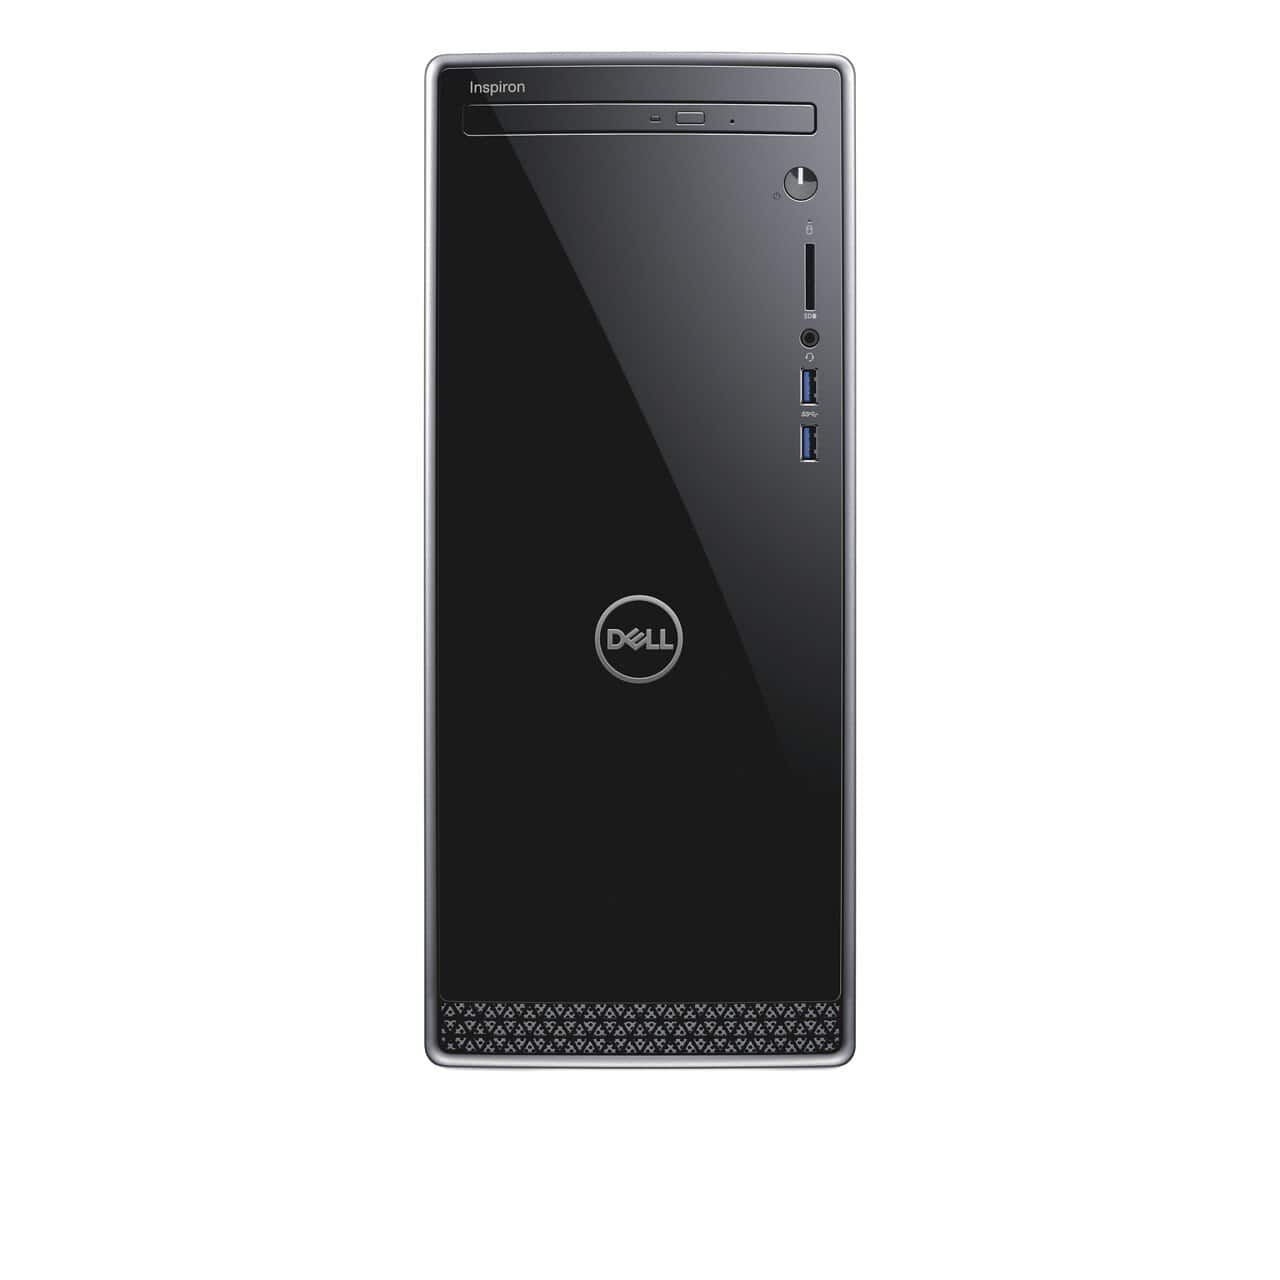 Dell Inspiron 3670 Desktop Intel i5-9400 1TB HDD 8GB RAM :  $519.99 +  $129.75 back in points + FS